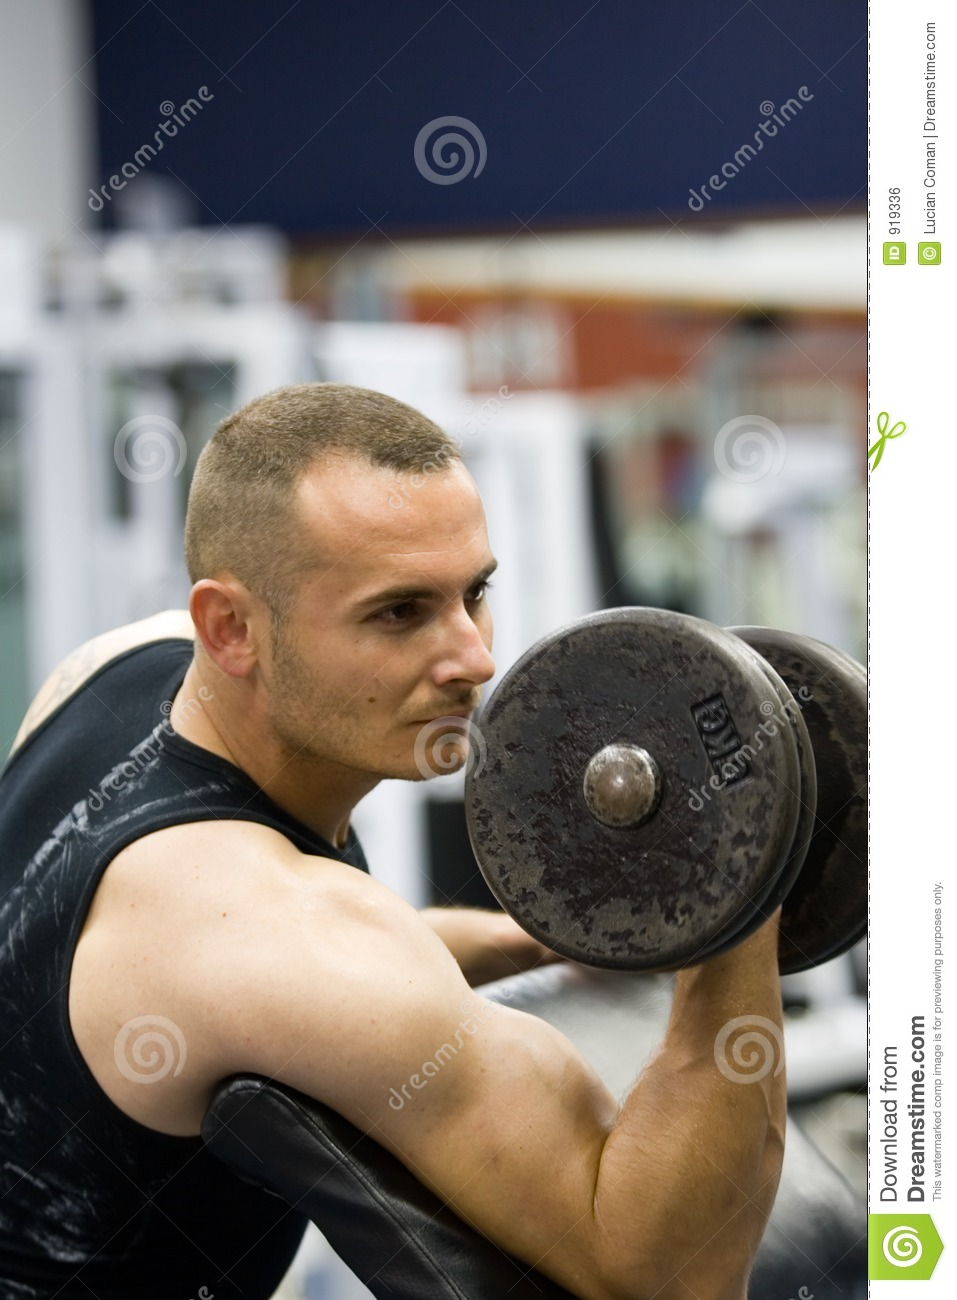 Fitness gym training weights